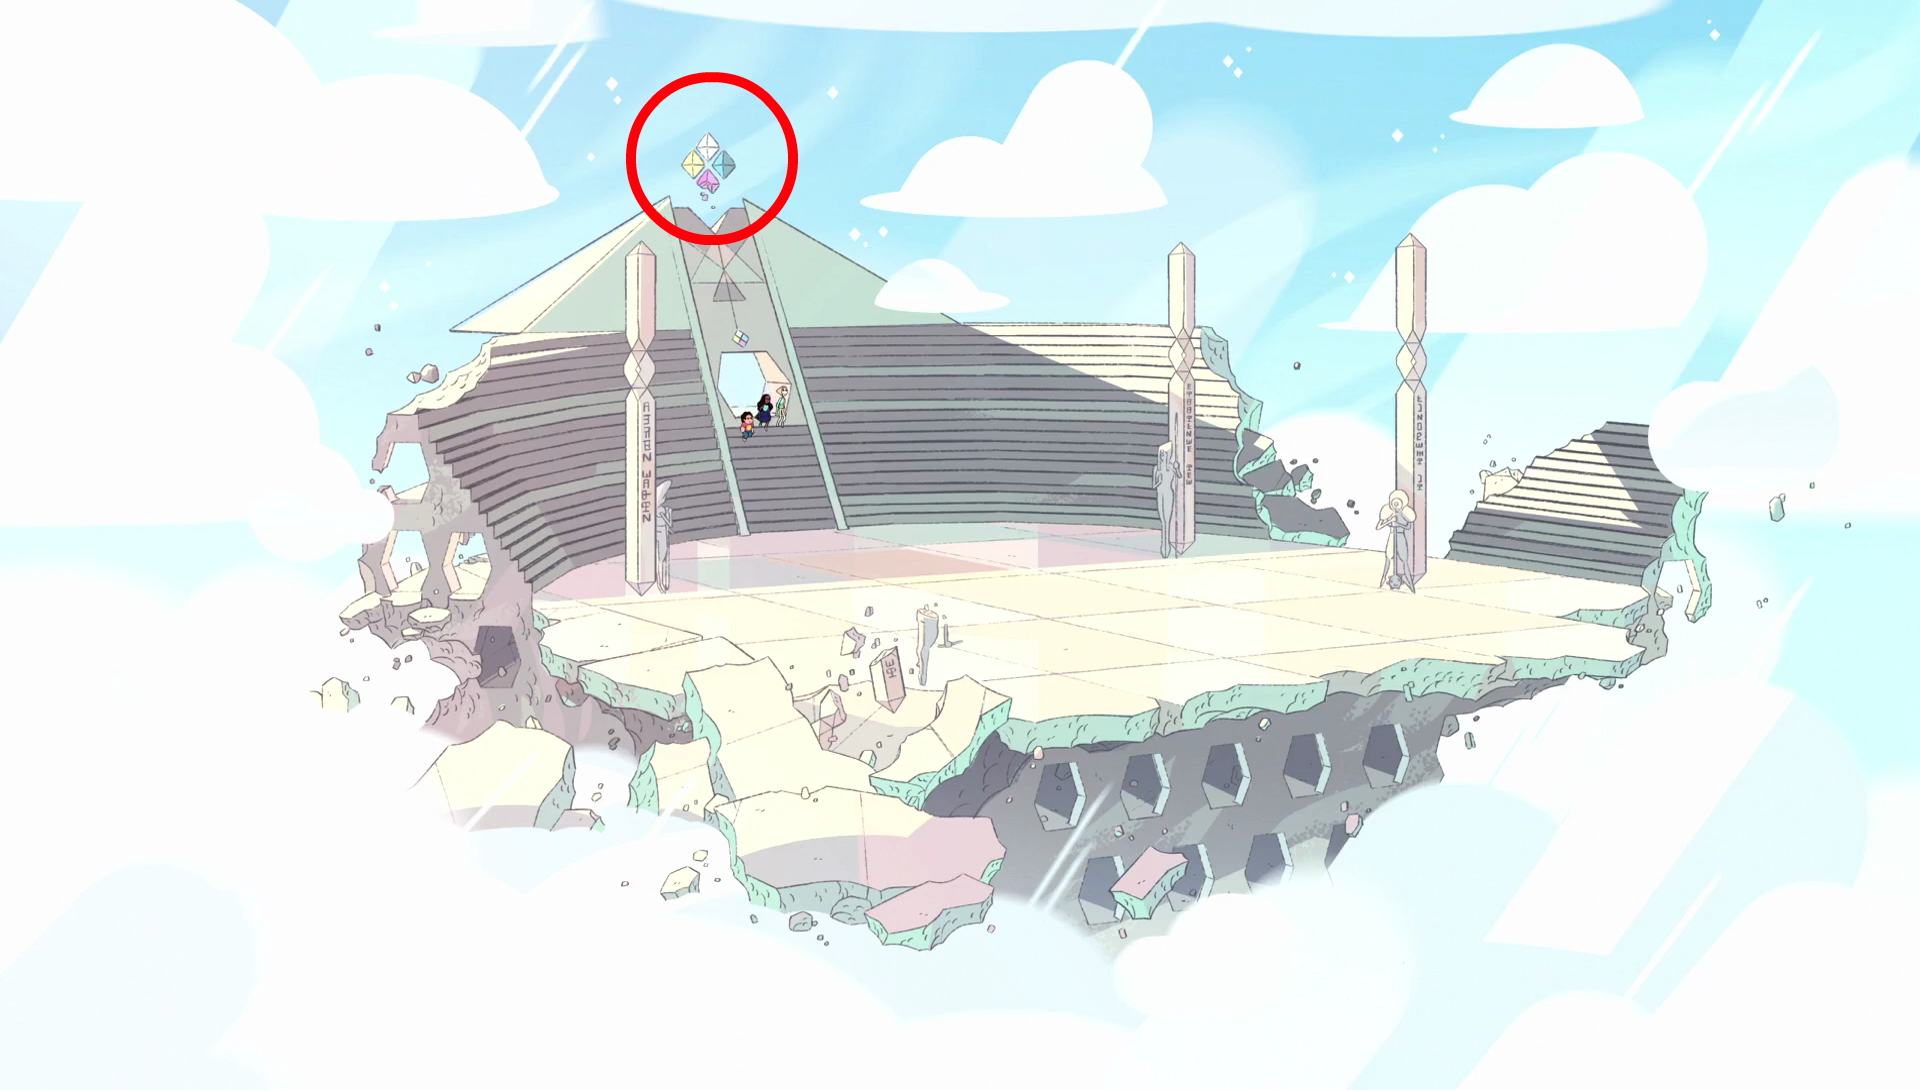 pink diamond crumbling sky arena sworn to the sword